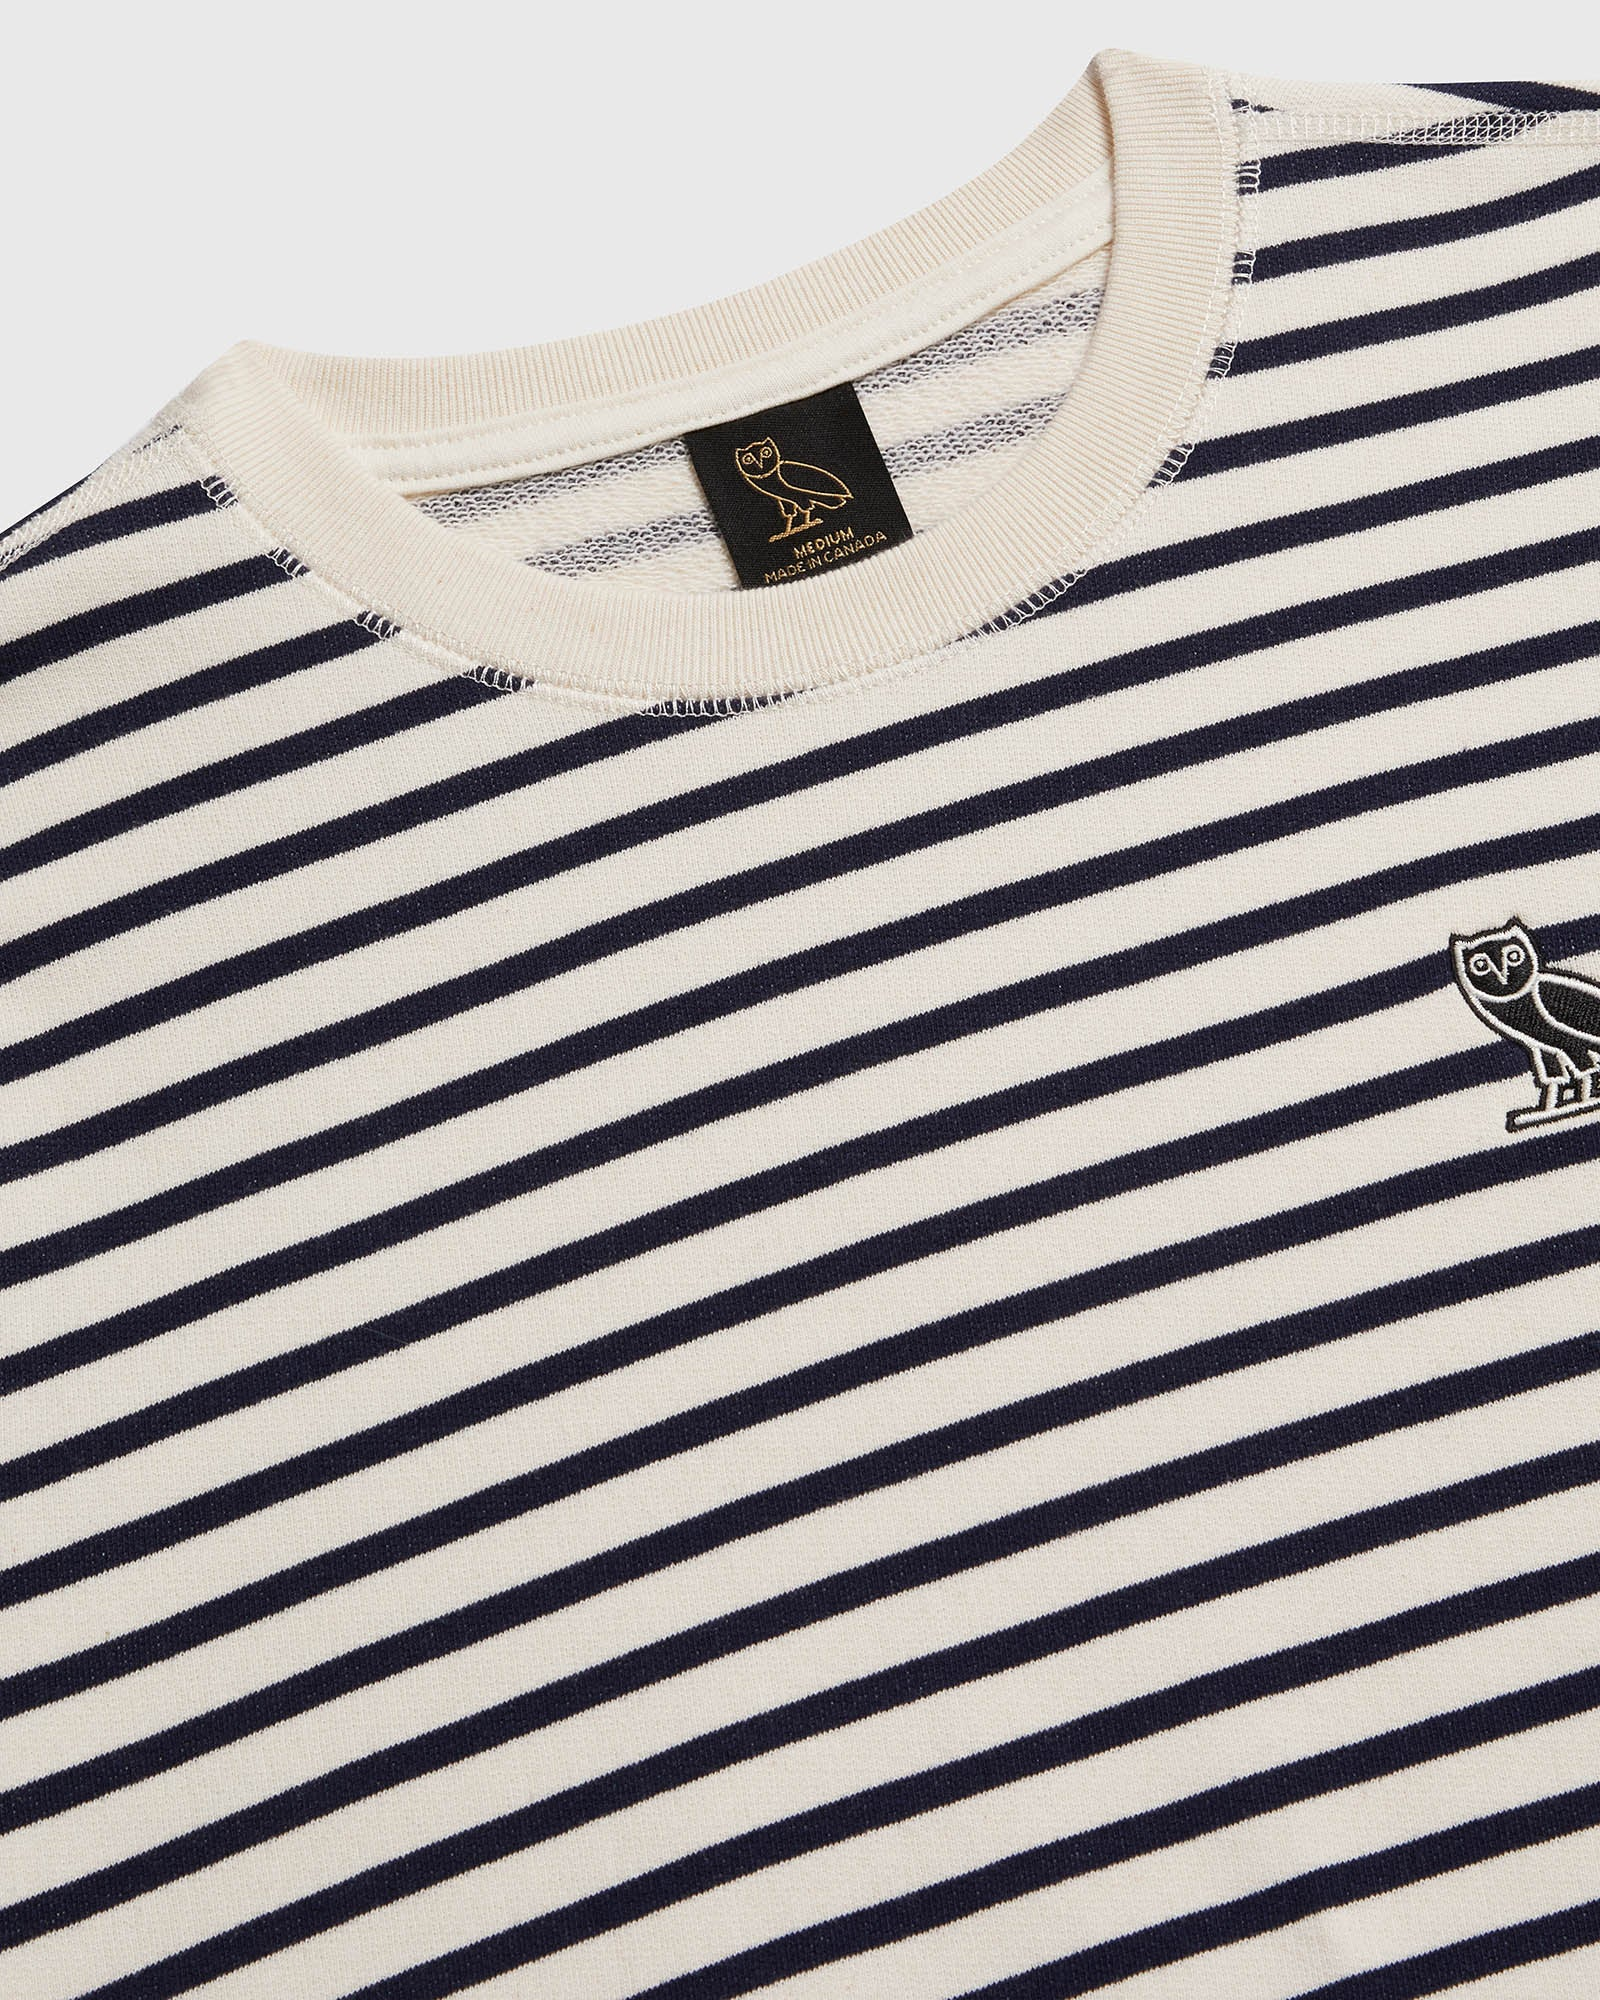 NAUTICAL STRIPE CREWNECK - NAVY/CREAM IMAGE #4